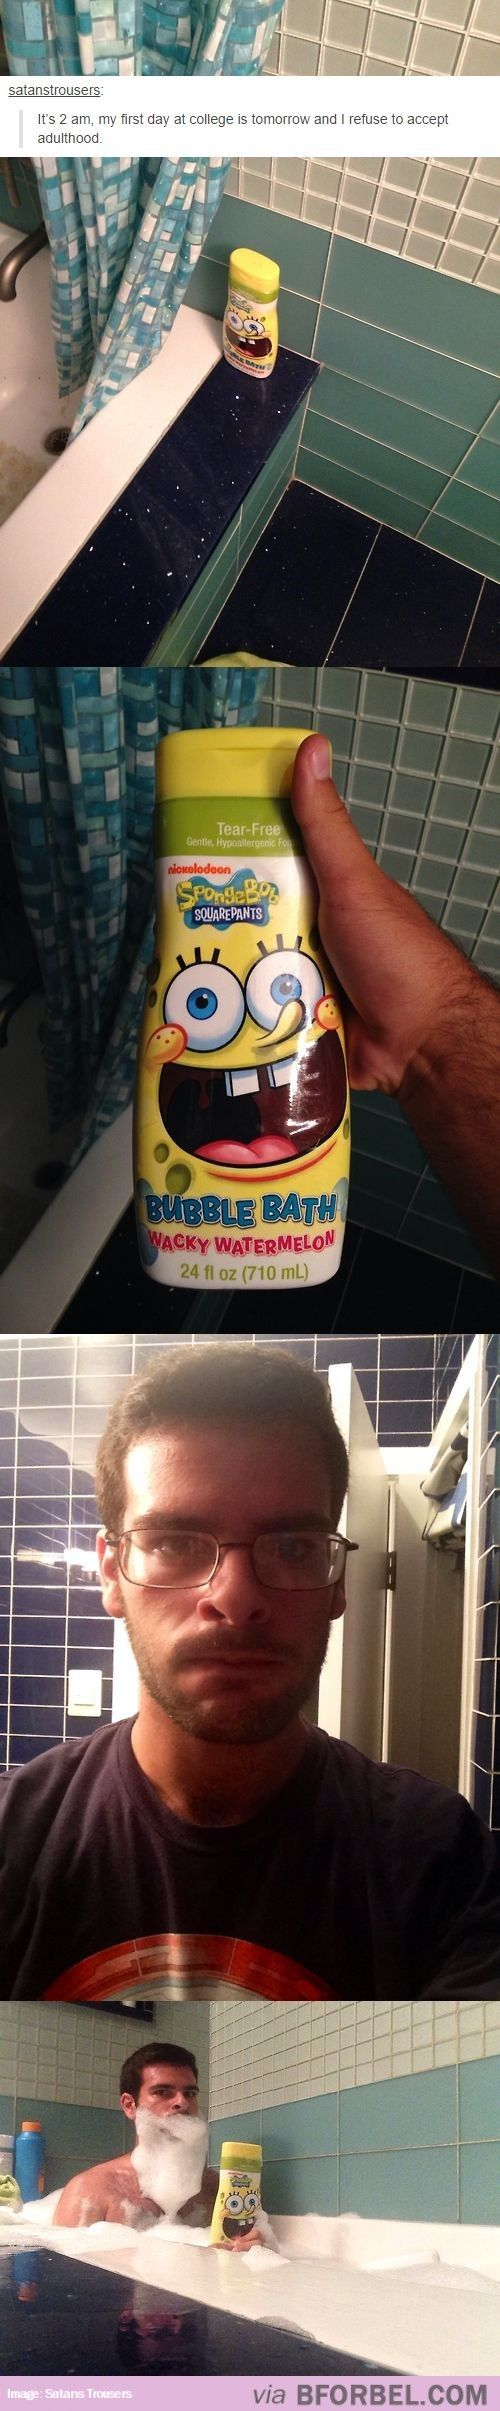 LOL: This Man, Accept Adulthood, College Life, Guy, Fucking Role, My Life, Bubble Baths, Captain America Shirt